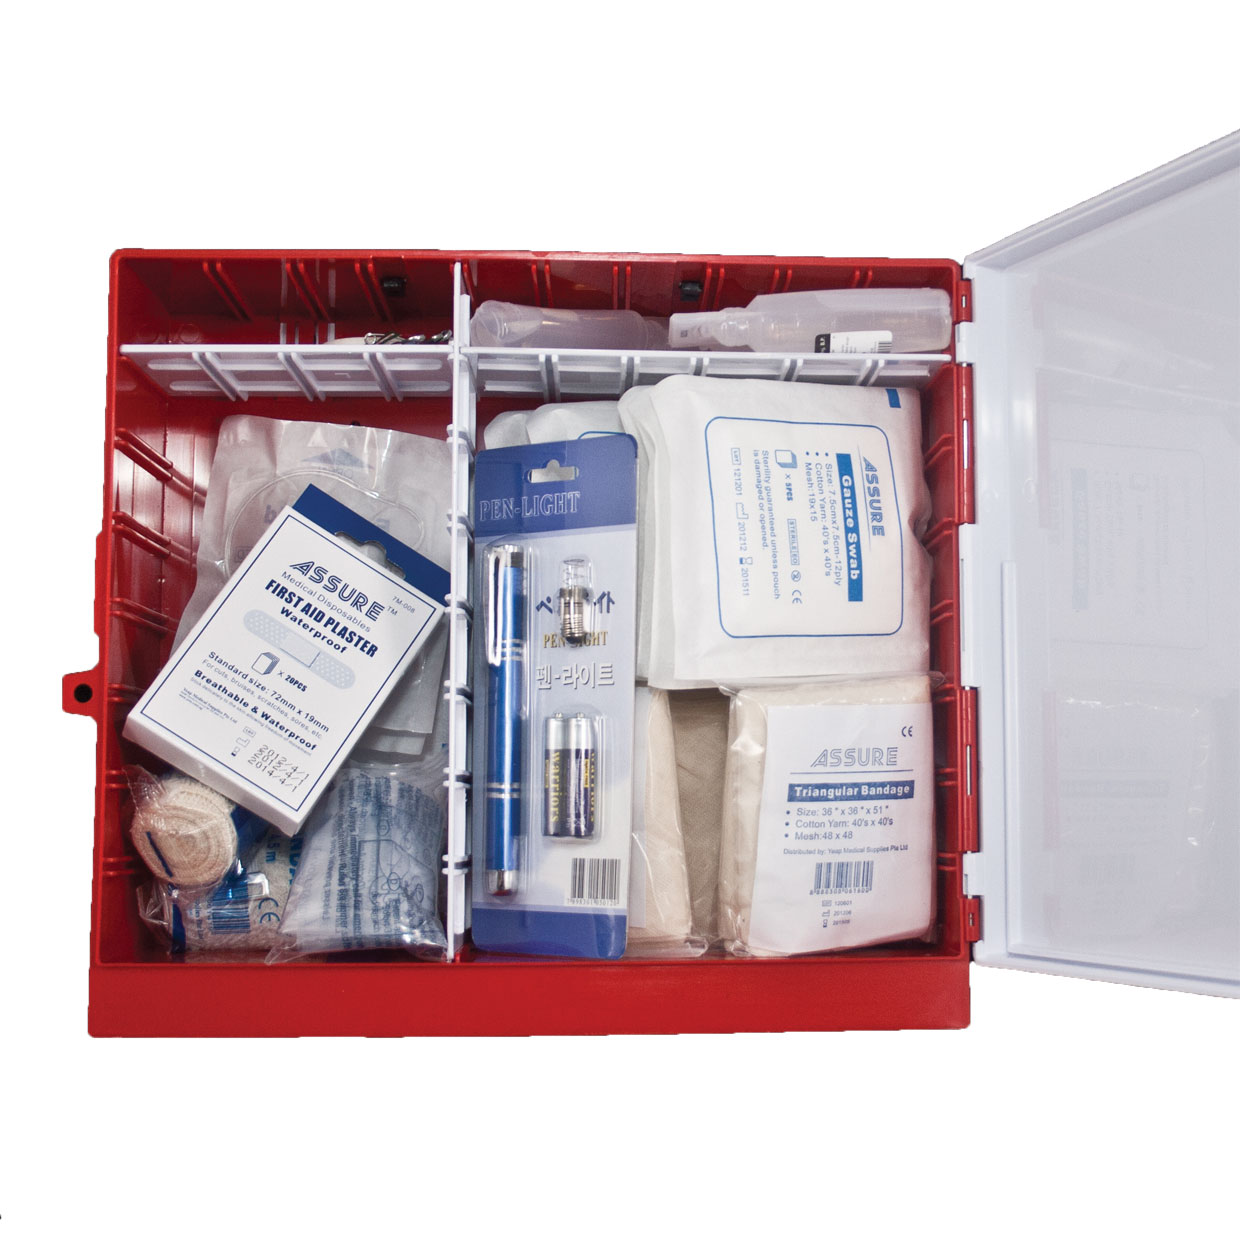 First Aid Box with Contents - Box (A (25 workers)) - S$75.00